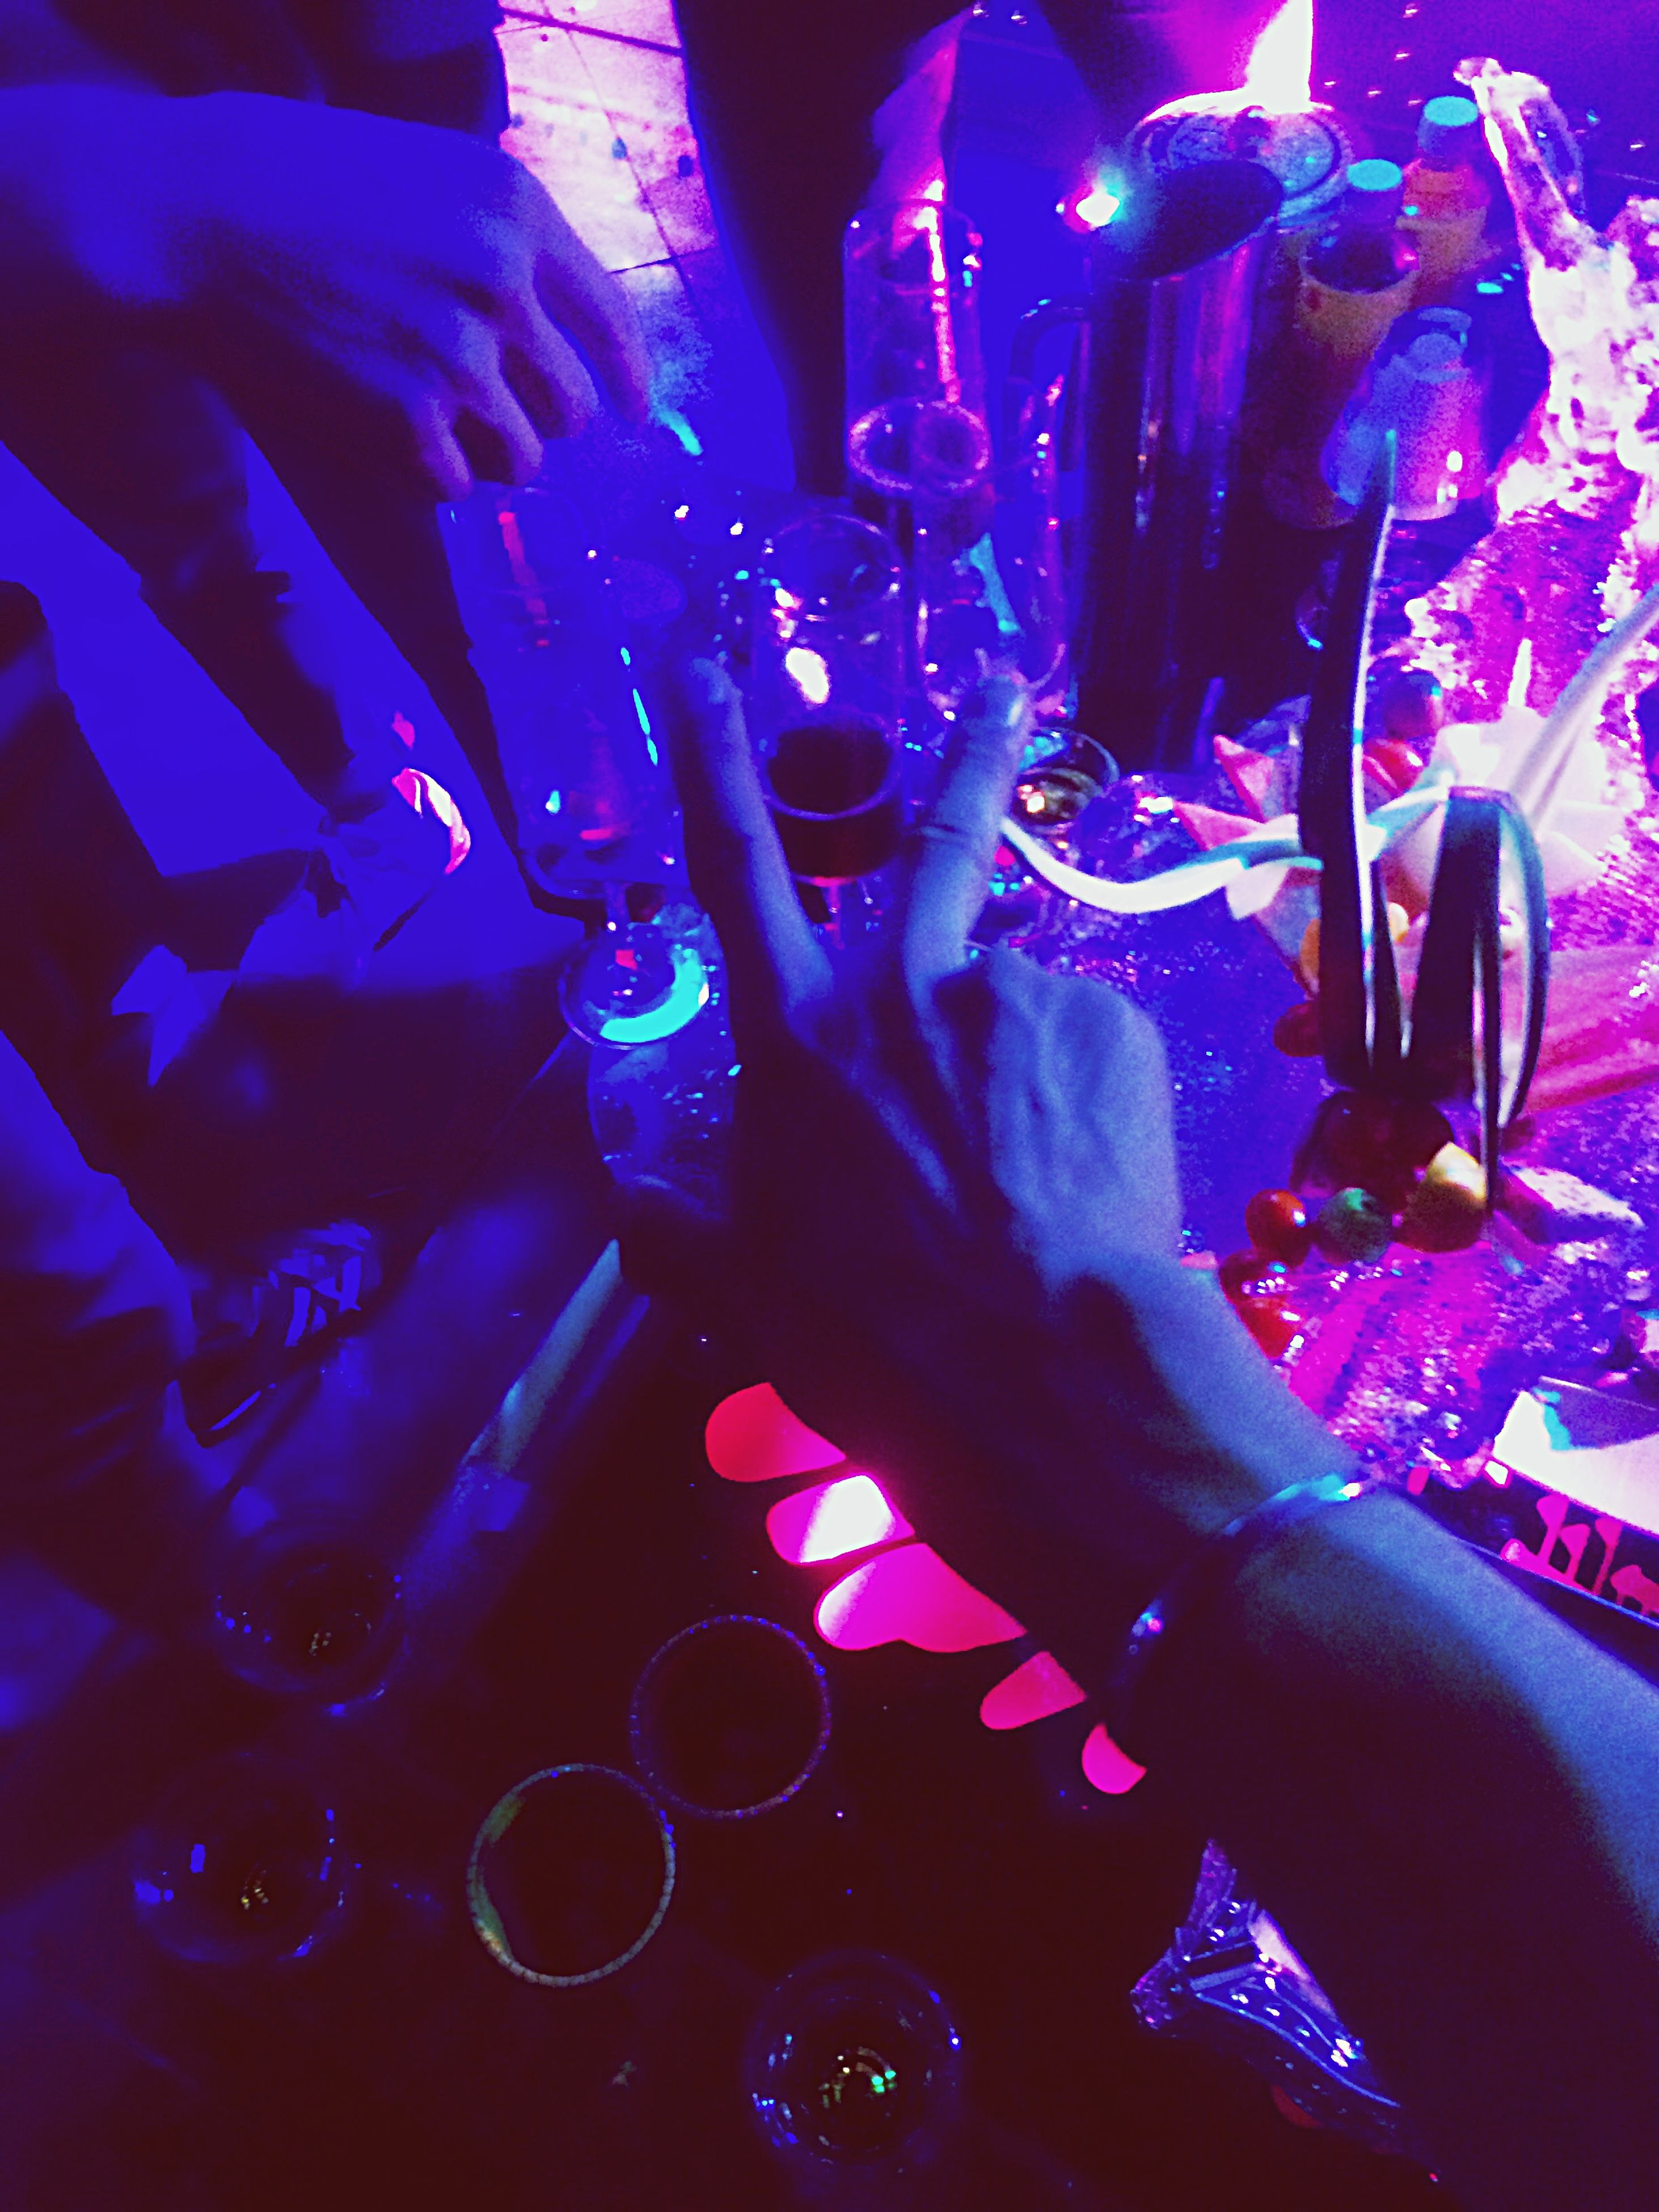 indoors, person, close-up, part of, blue, arts culture and entertainment, nightlife, cropped, illuminated, nightclub, music, shiny, human finger, unrecognizable person, large group of objects, variation, performance